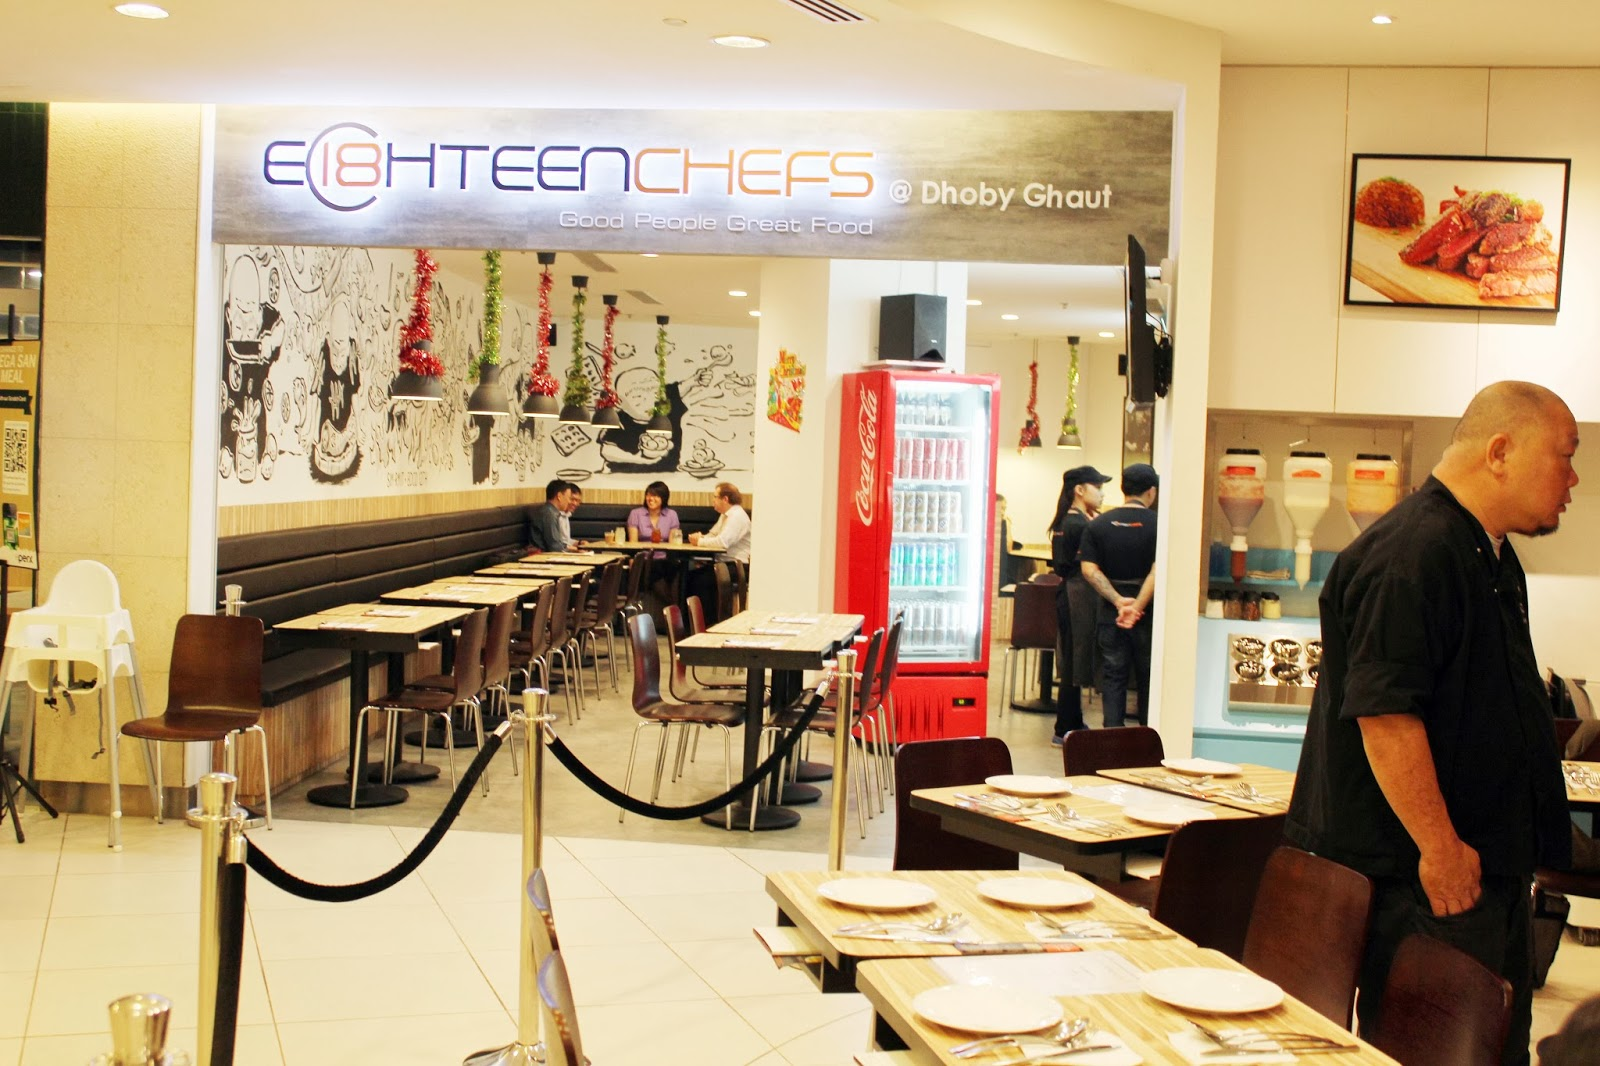 Food review eighteen chefs singapore - My Experience At Eighteen Chefs The Cathay